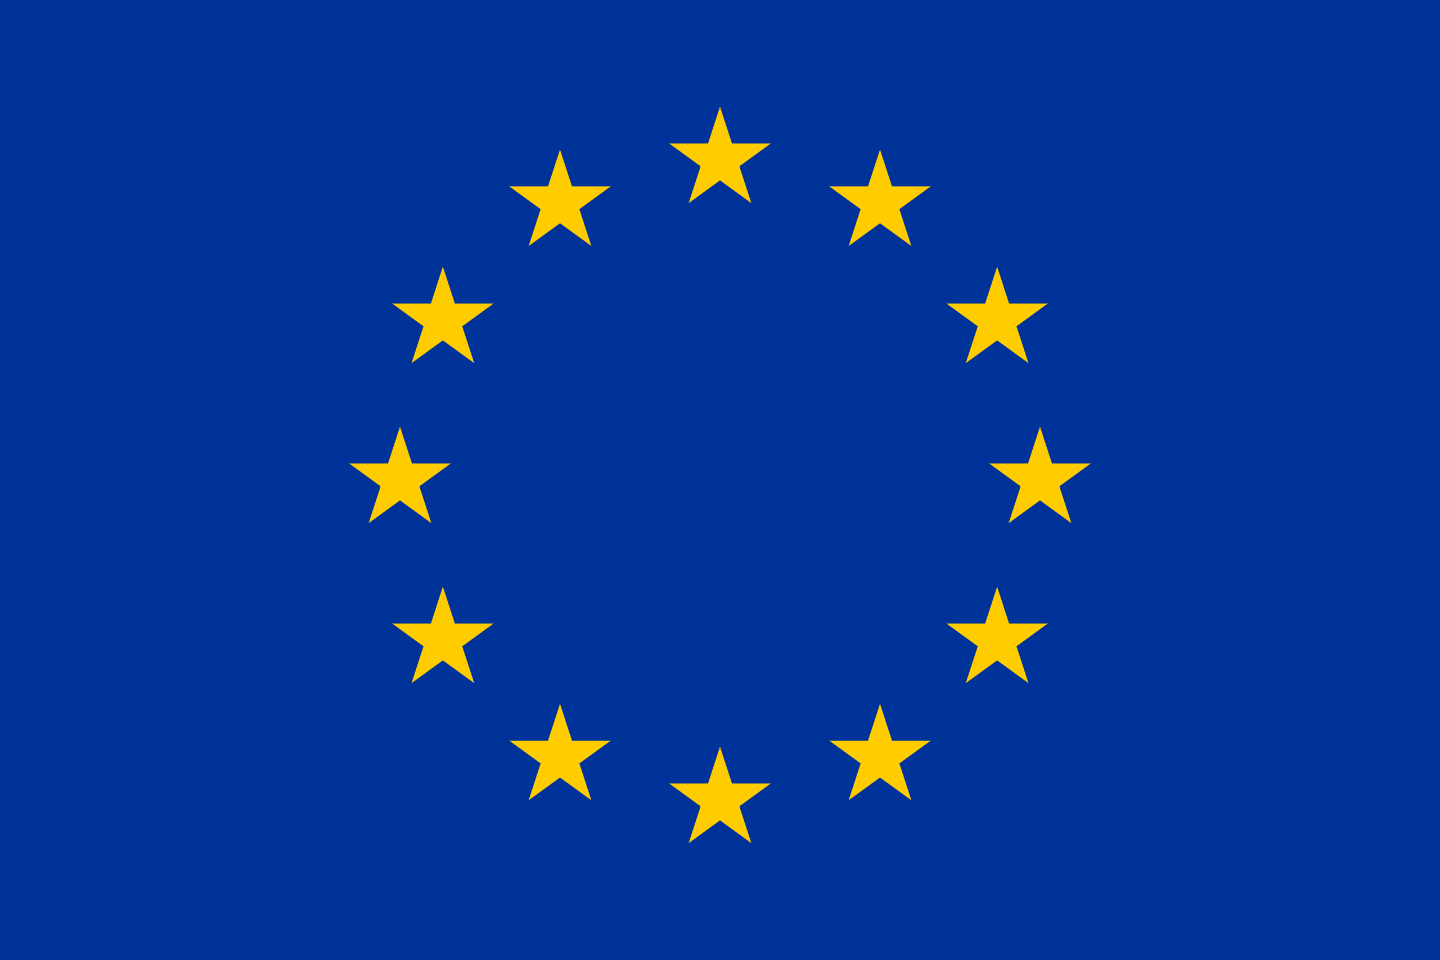 Flag_of_Europe.svg-1440x960.png